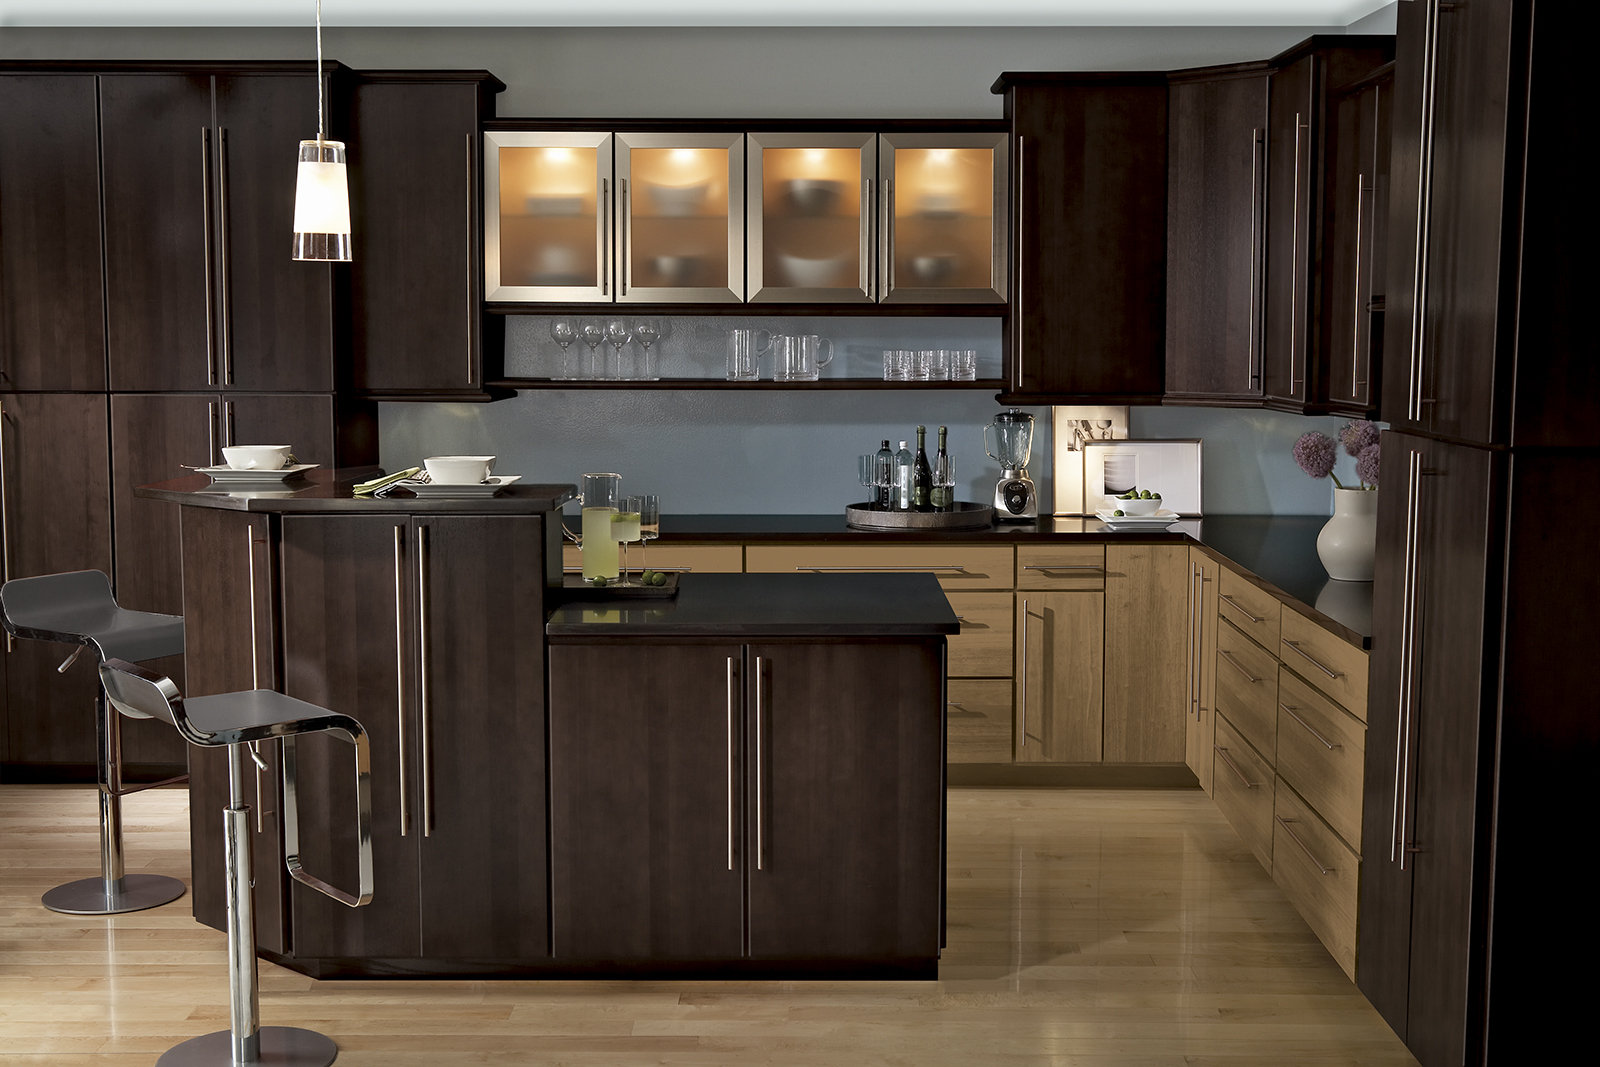 Calibra II kitchen shown in Truffle and Toffee finishes